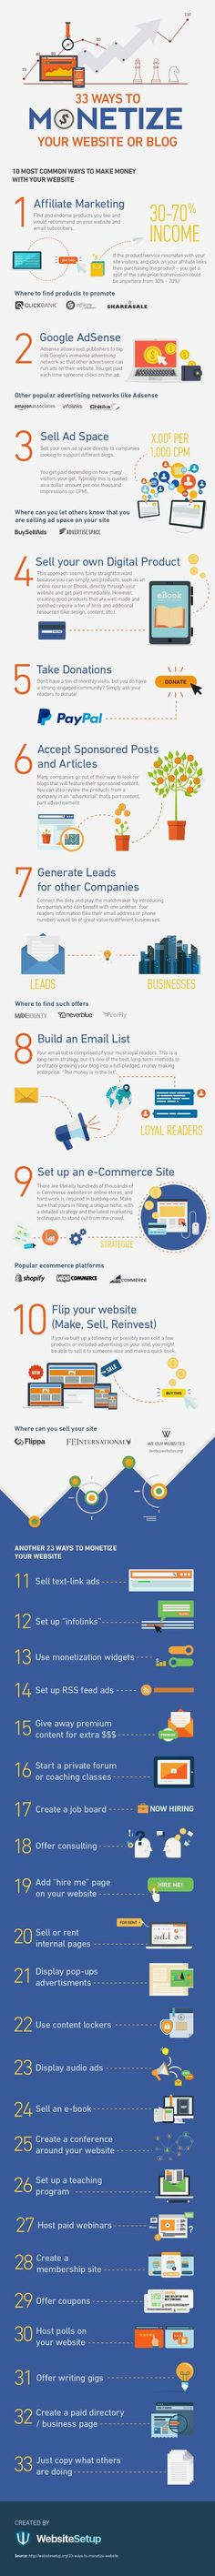 33 Ways to Make Money From Your Website or Blog #Infographic